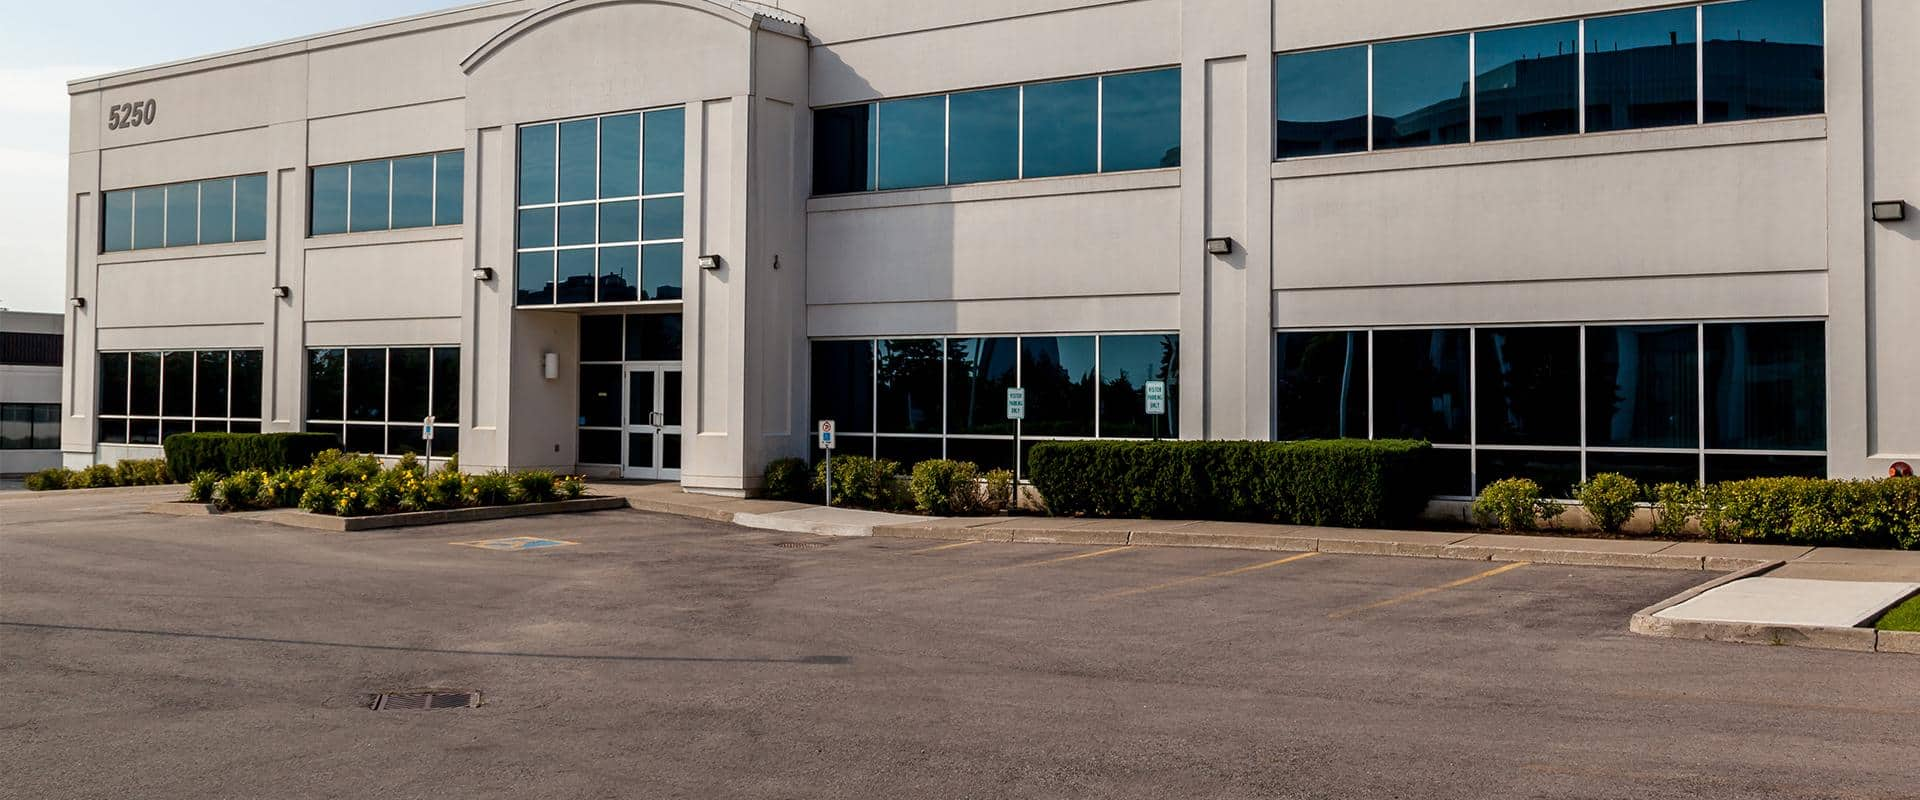 modern office complex with professional shrubs and landscaping in modesto california